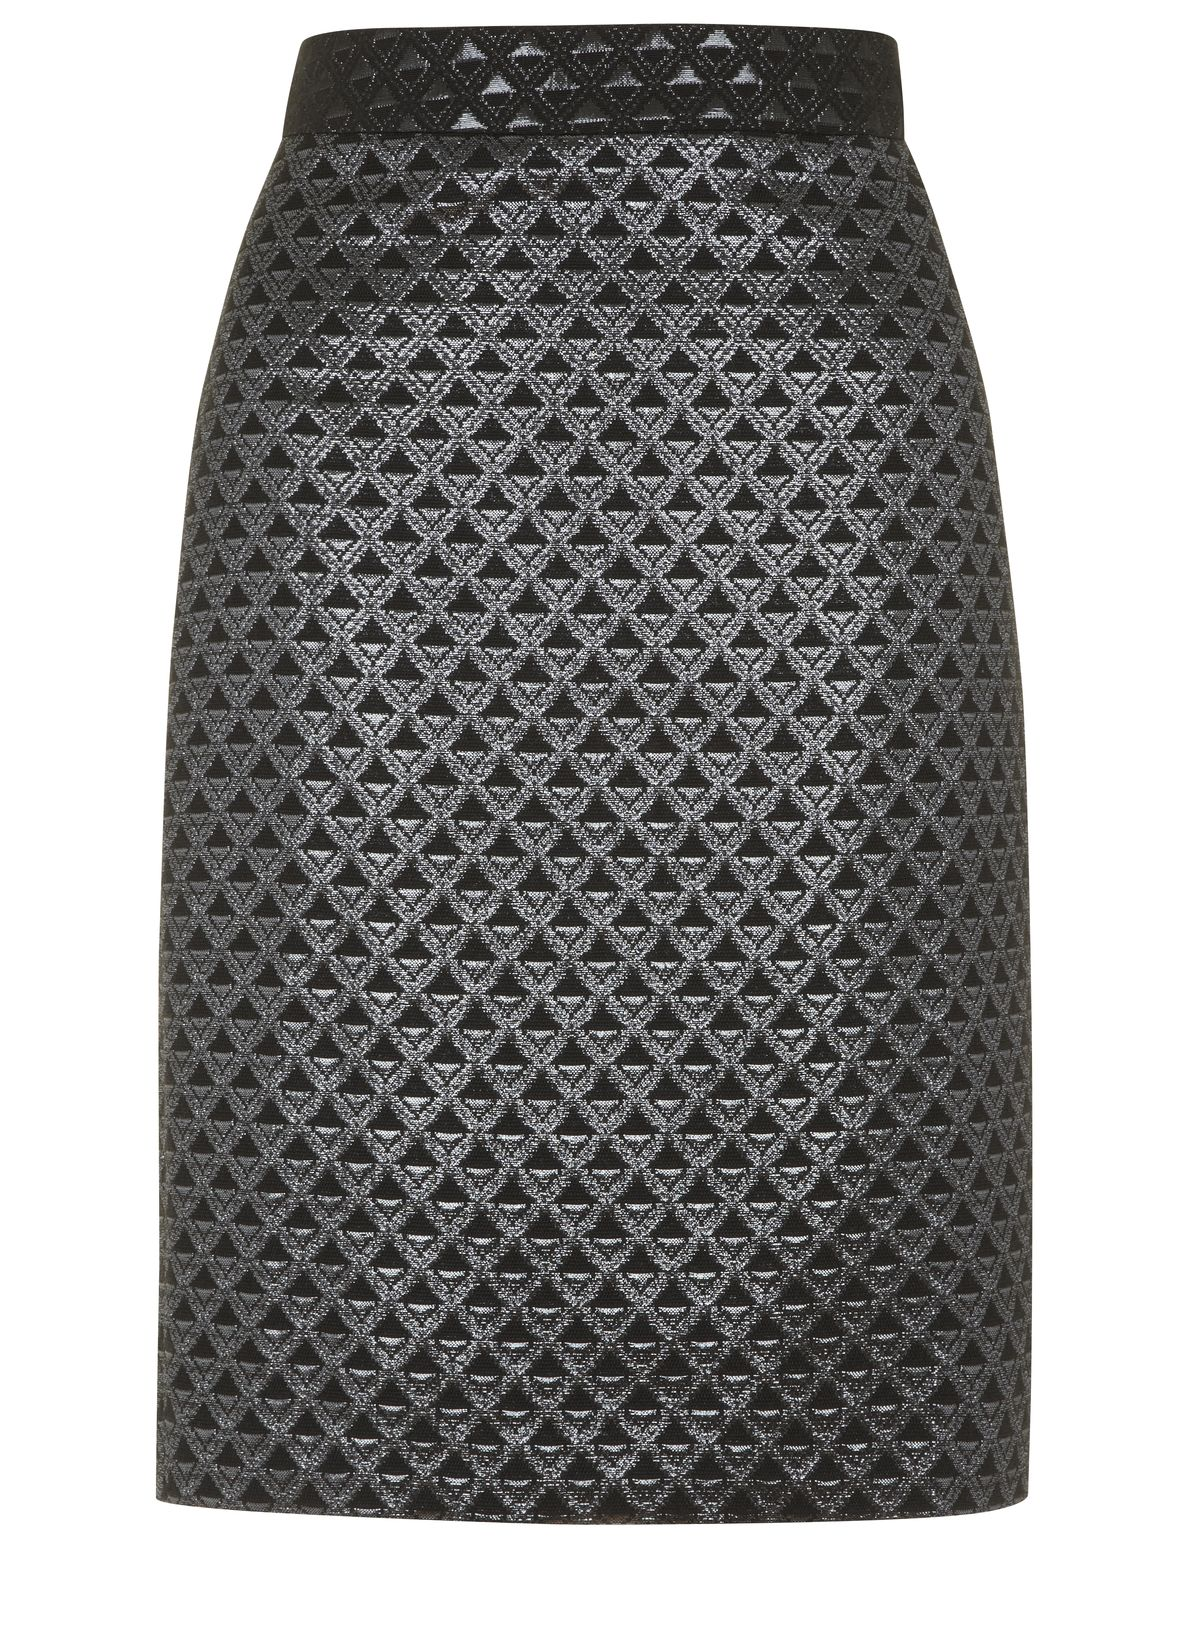 The Diamonds Are Forever Skirt